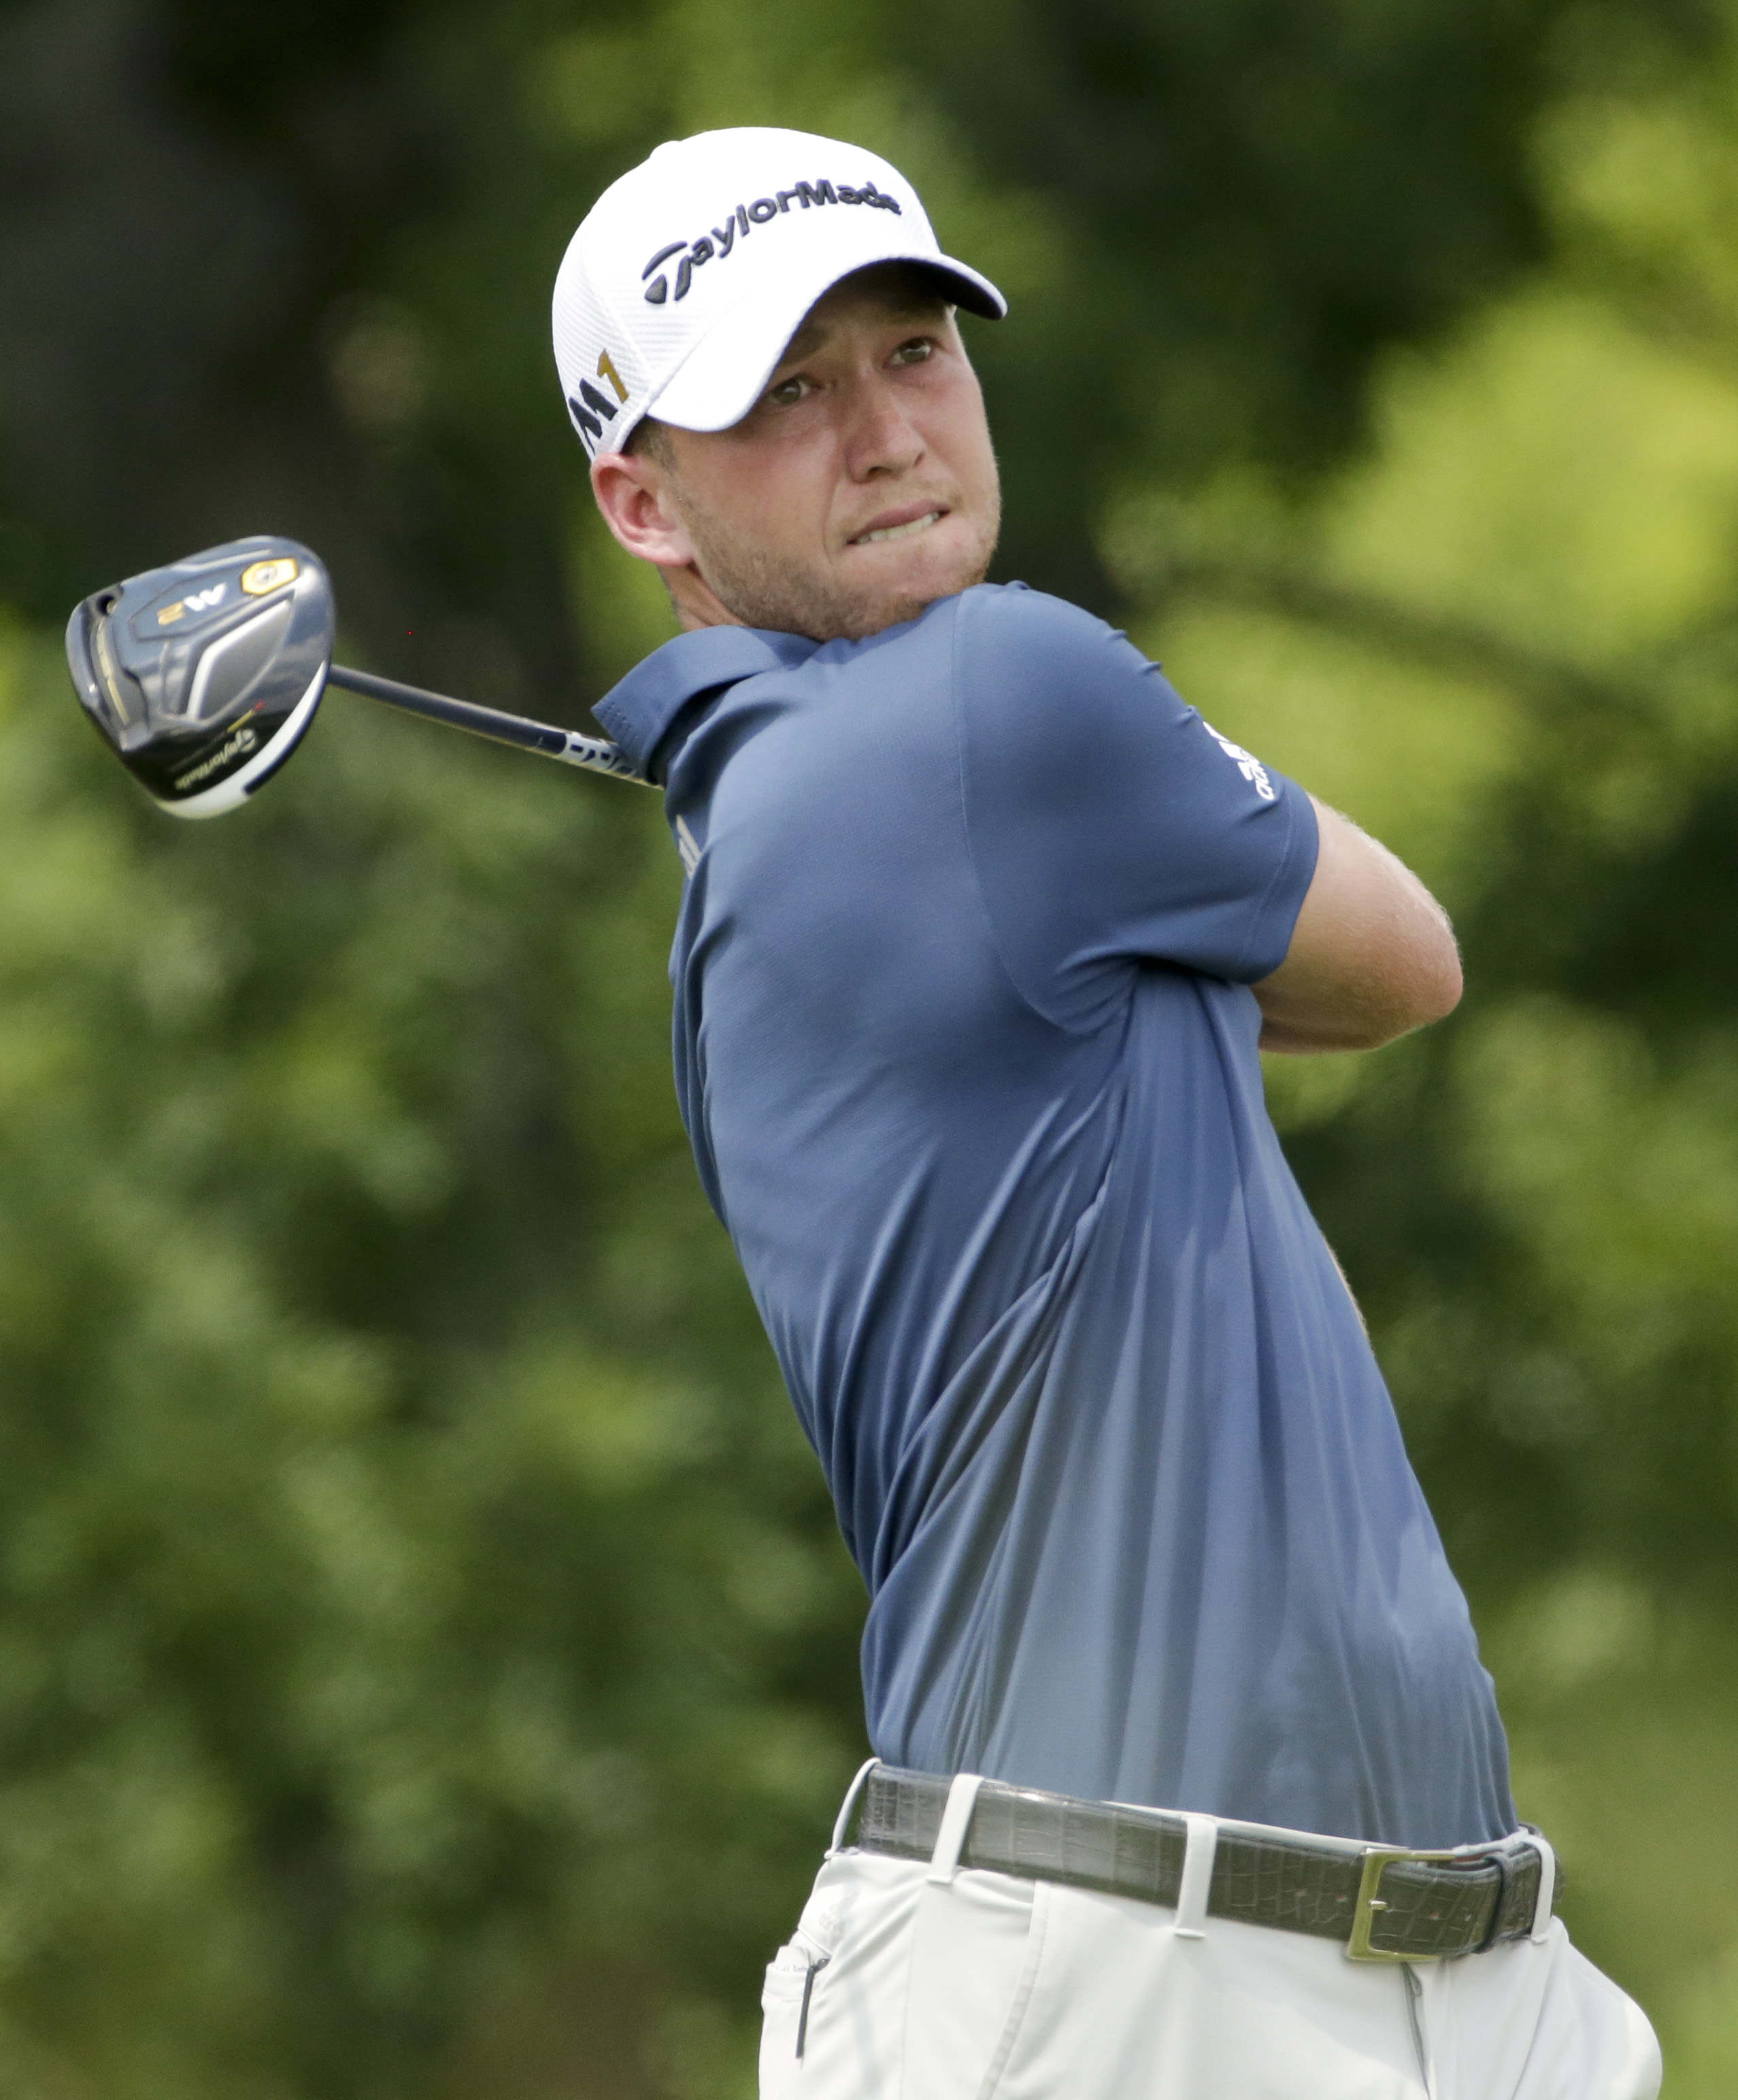 Daniel Berger watches his tee shot on the fourth hole during the final round of the U.S. Open golf championship at Oakmont Country Club on Sunday, June 19, 2016, in Oakmont, Pa. (AP Photo/Gene J. Puskar)